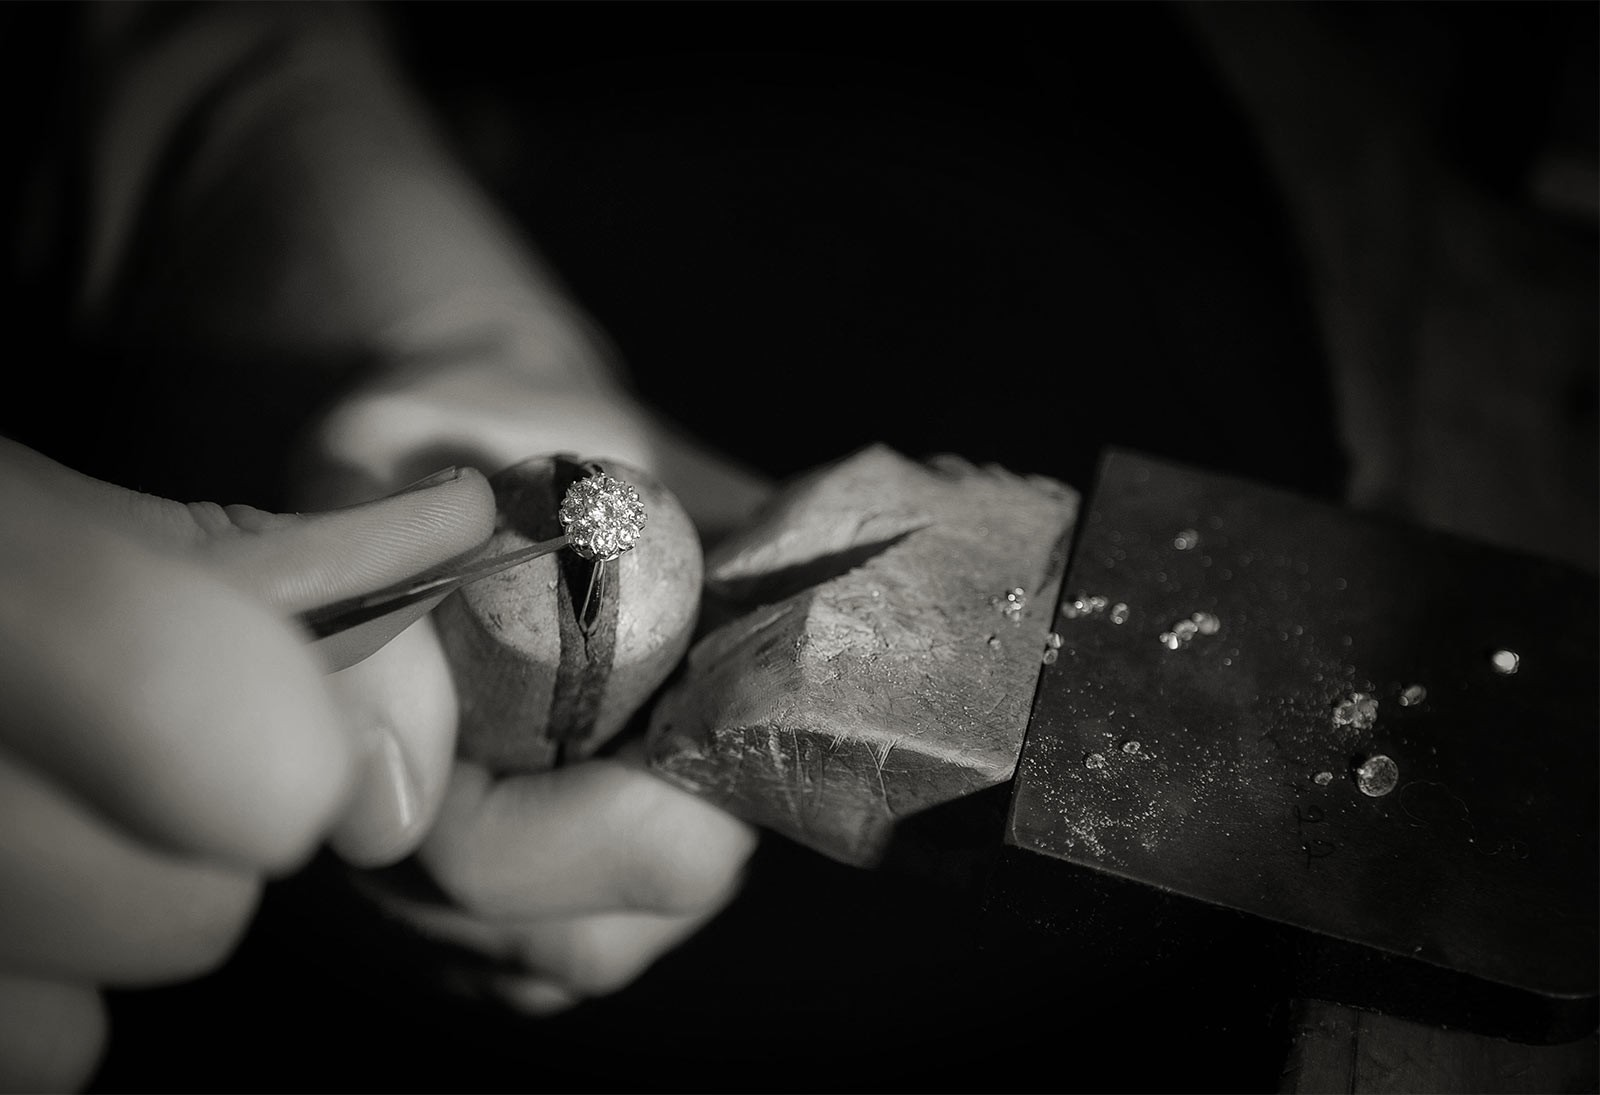 7. Set the stones. Setting a bespoke fine quality diamond ring or item of custom jewellery